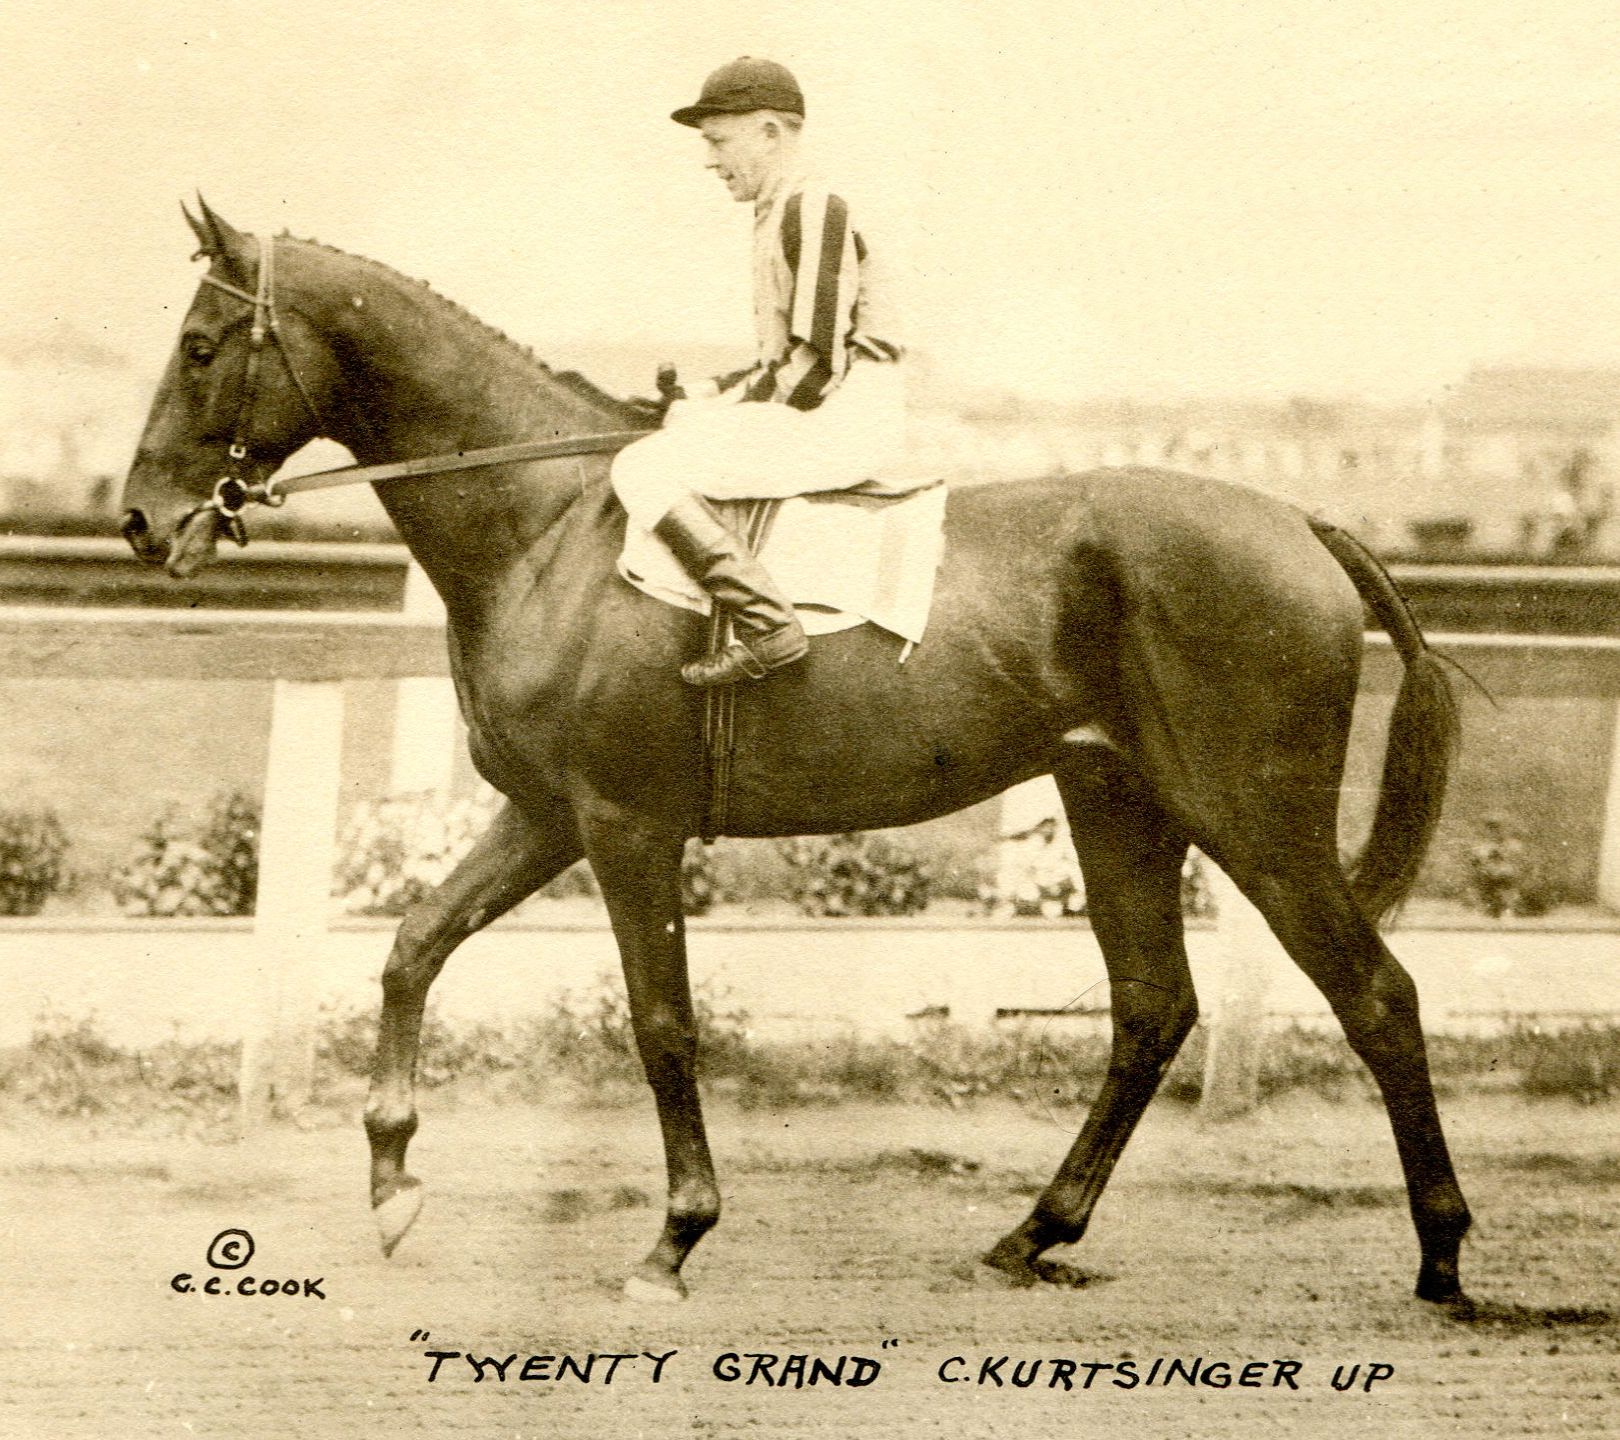 The 1931 Jockey Club Gold Cup, won by Twenty Grand (Charles Kurtsinger up)  (C. C. Cook/Museum Collection)